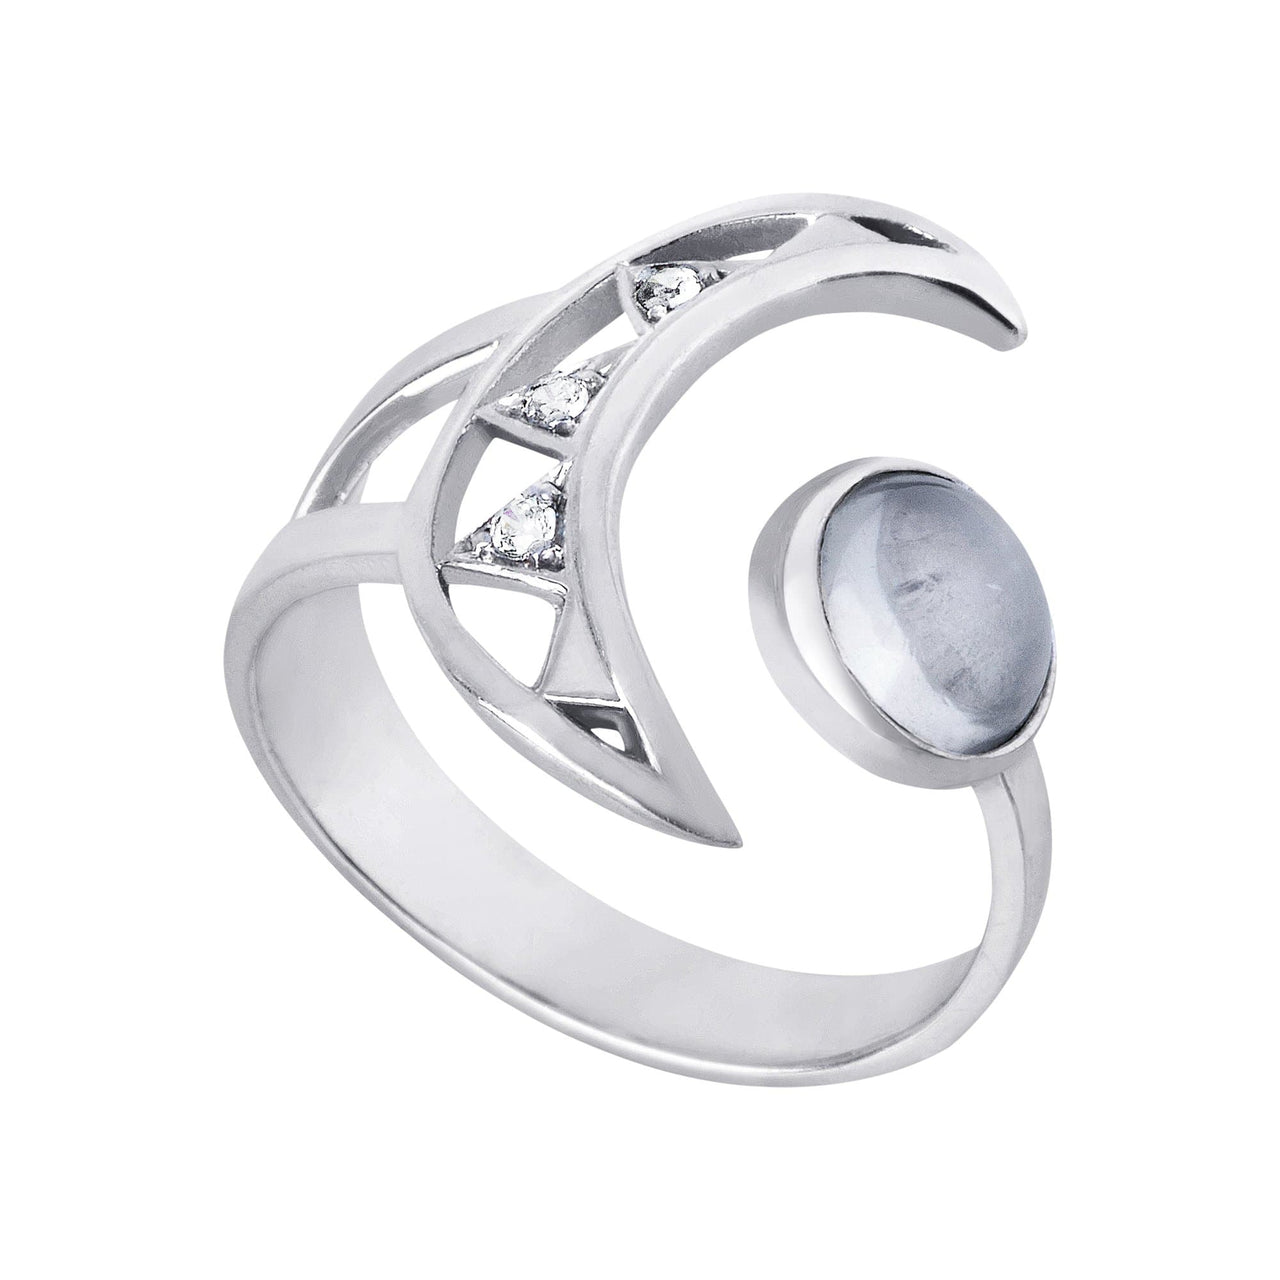 Mel Bandeira Rings Crescent Moon Sterling Silver Ring